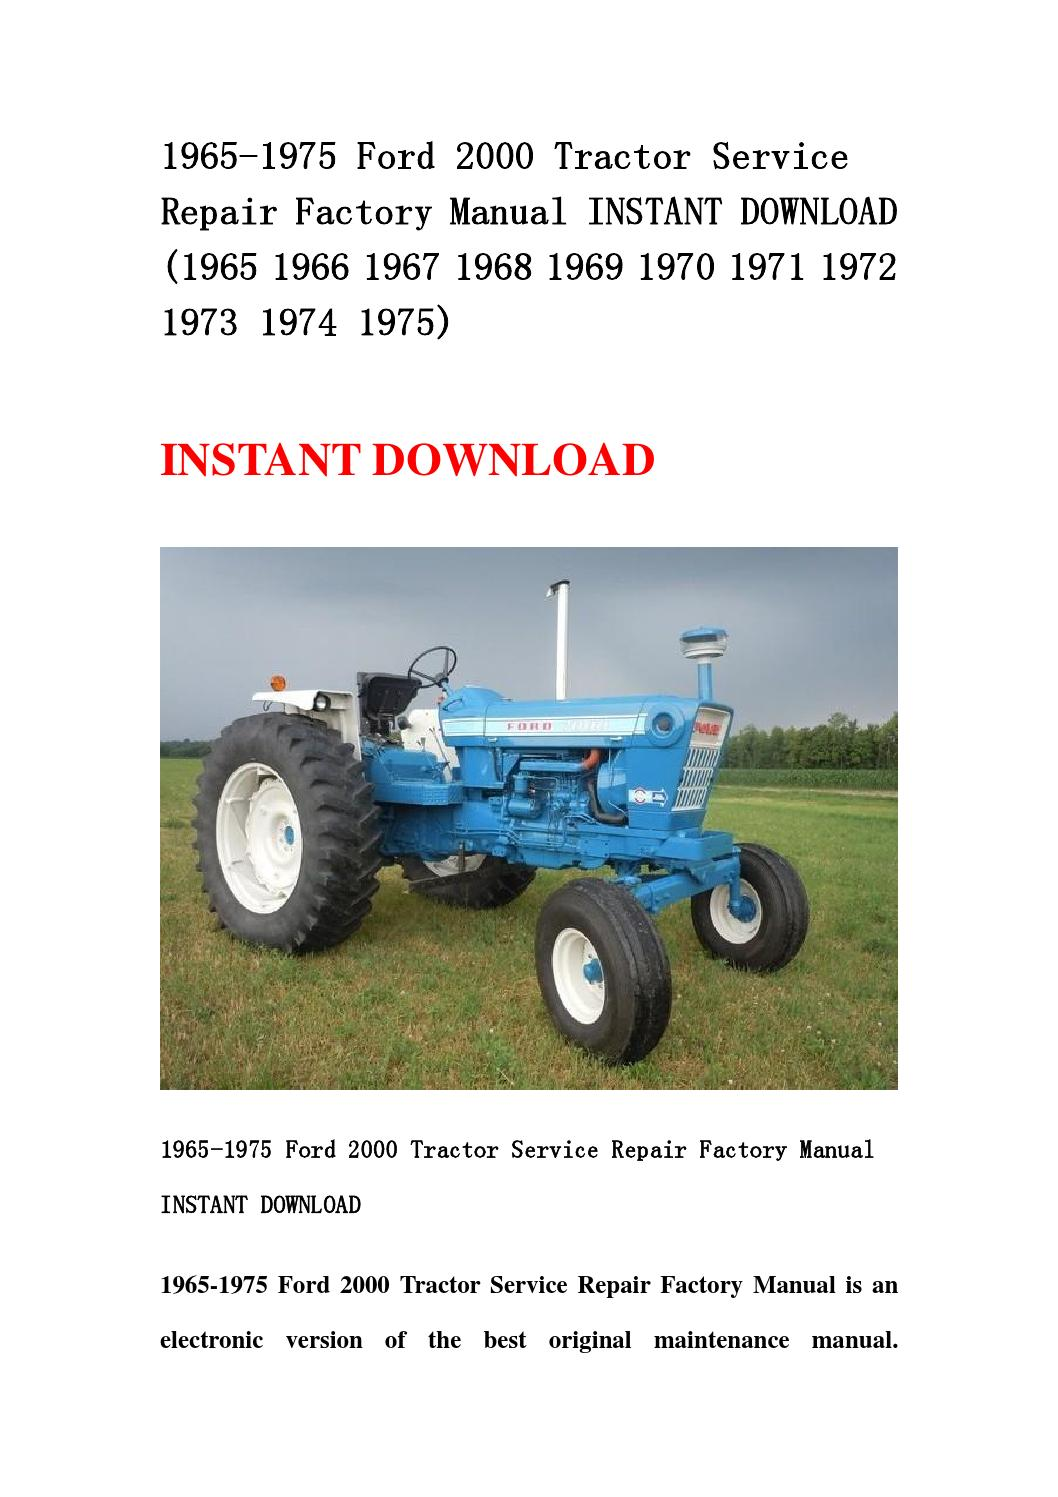 1969 Ford 3000 Tractor Steering Part Numbers : Ford tractor service repair factory manual